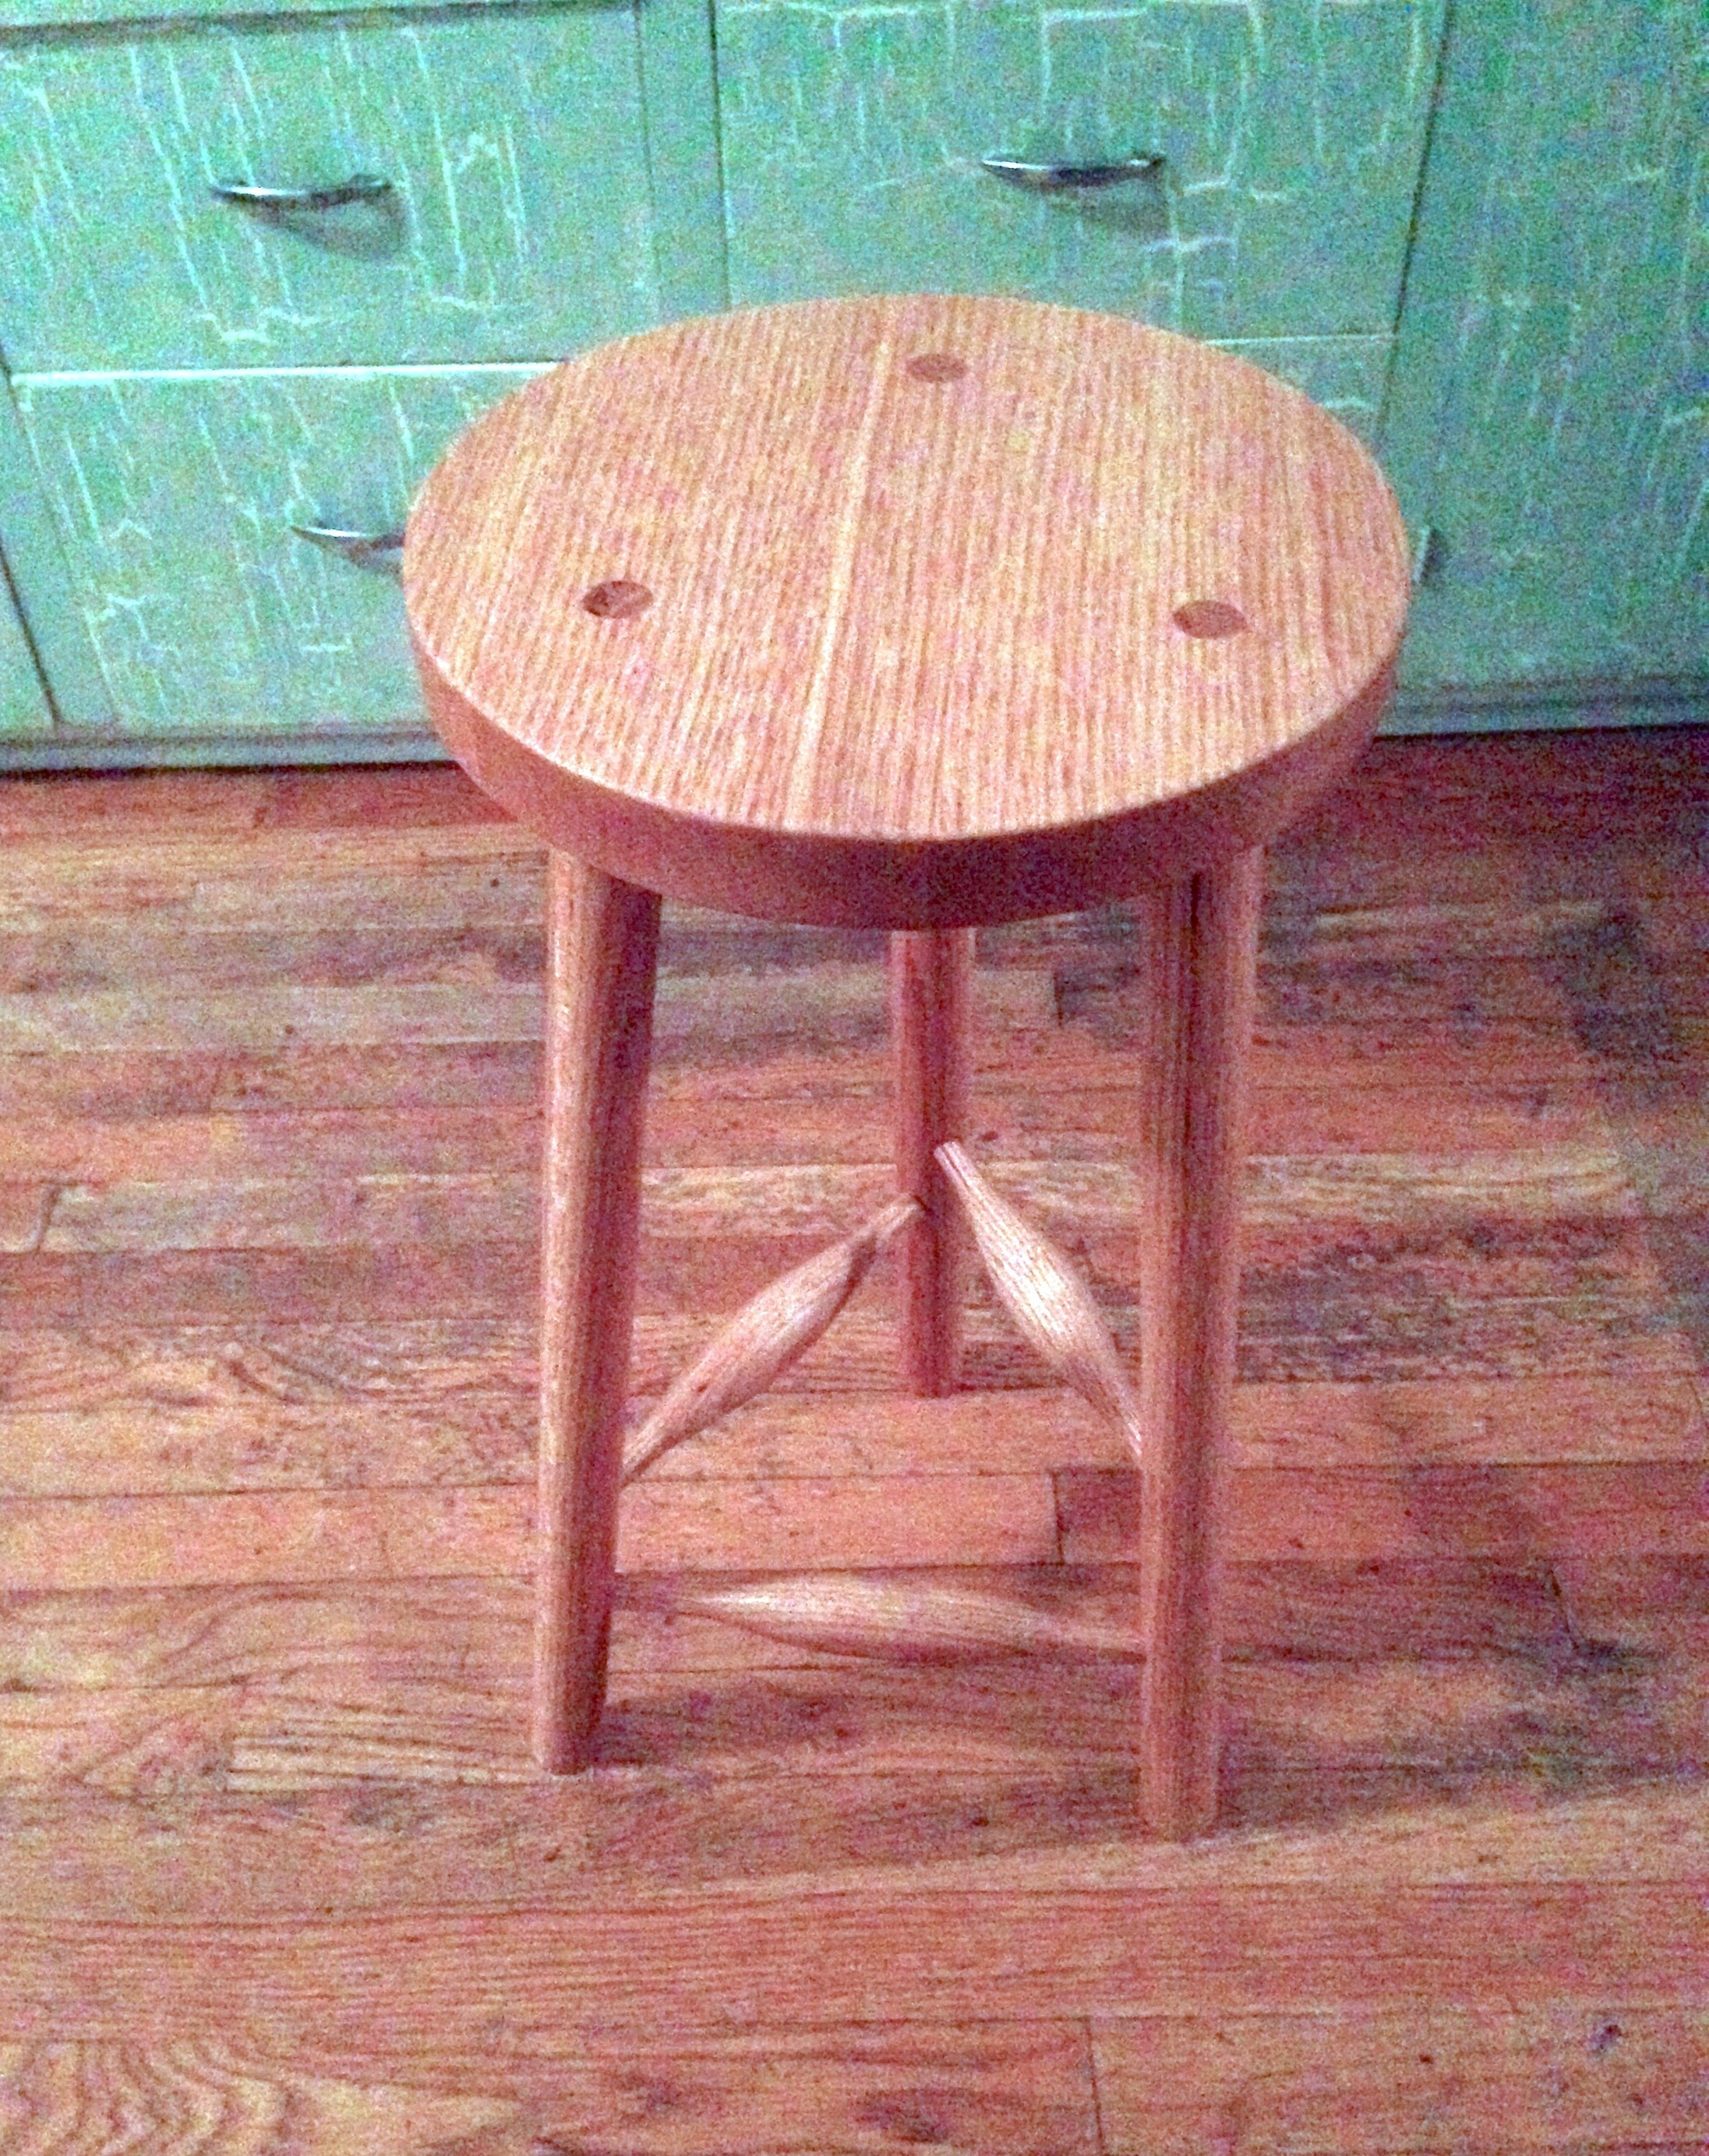 How to Build a Stool from One 2x4